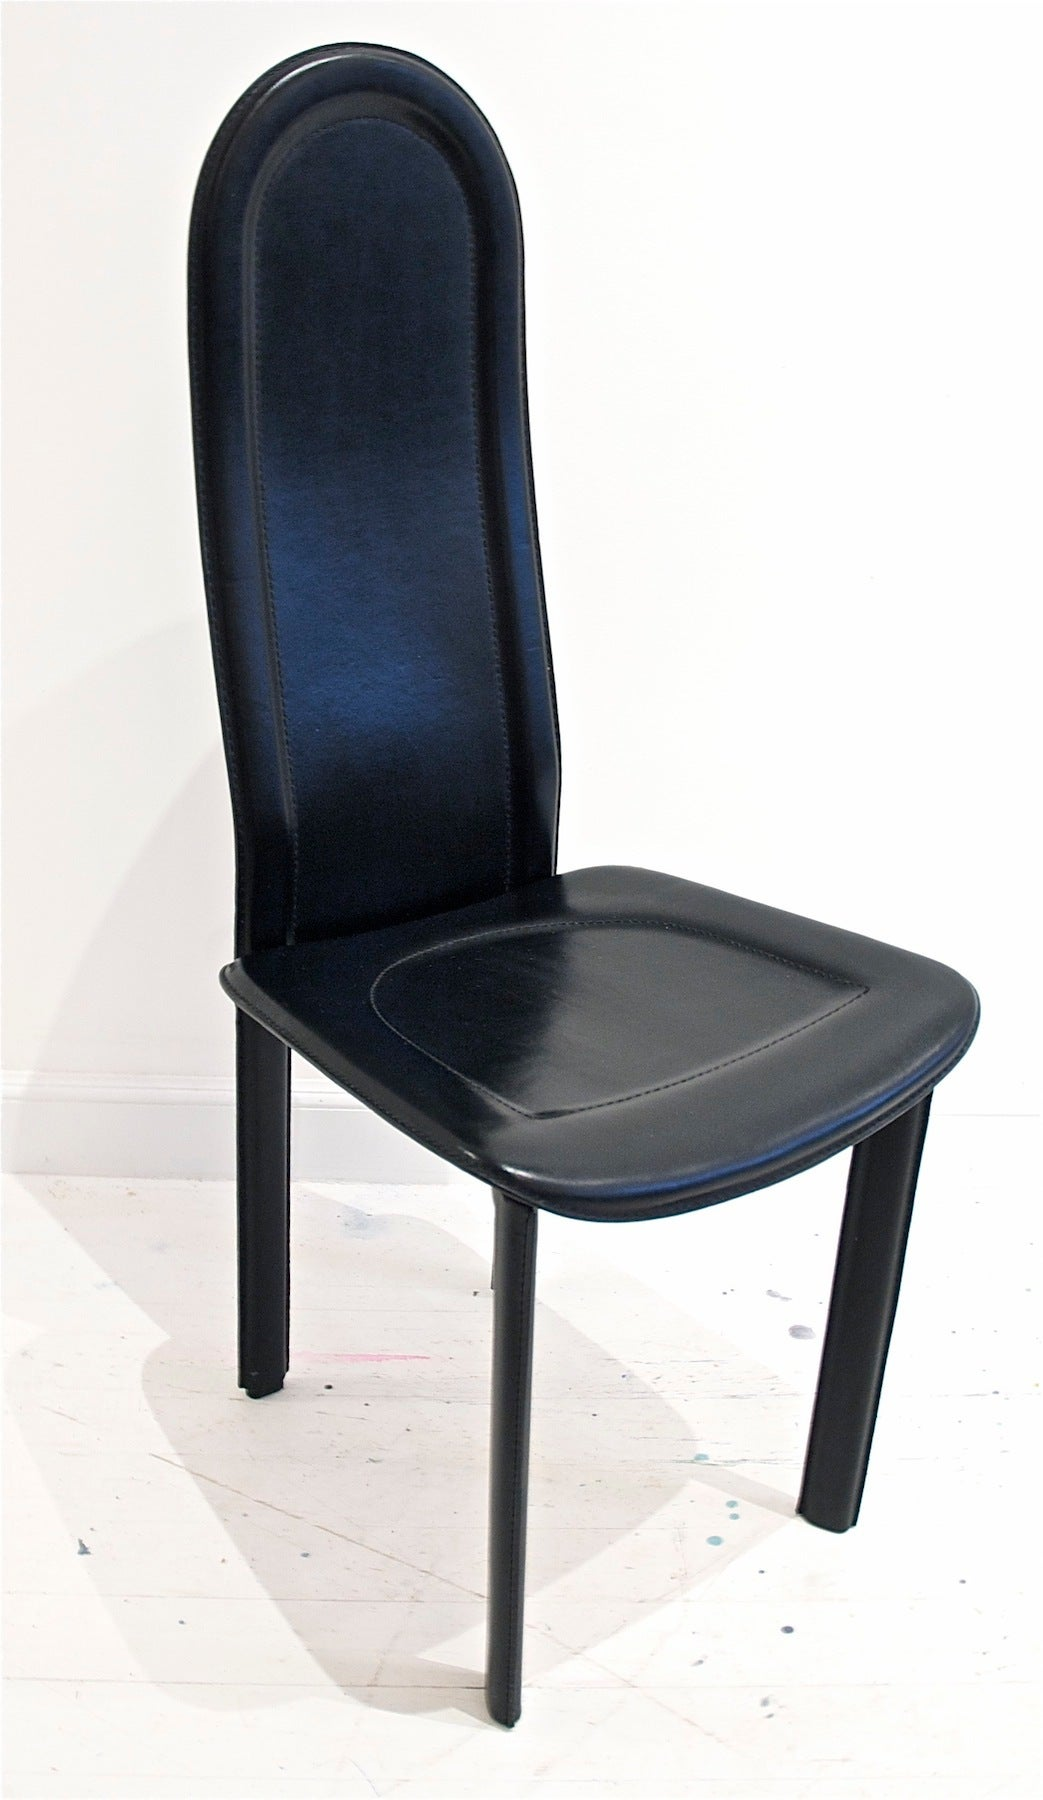 Black Leather Dining Chairs Black Leather Dining Chairs By Artedi Uk At 1stdibs